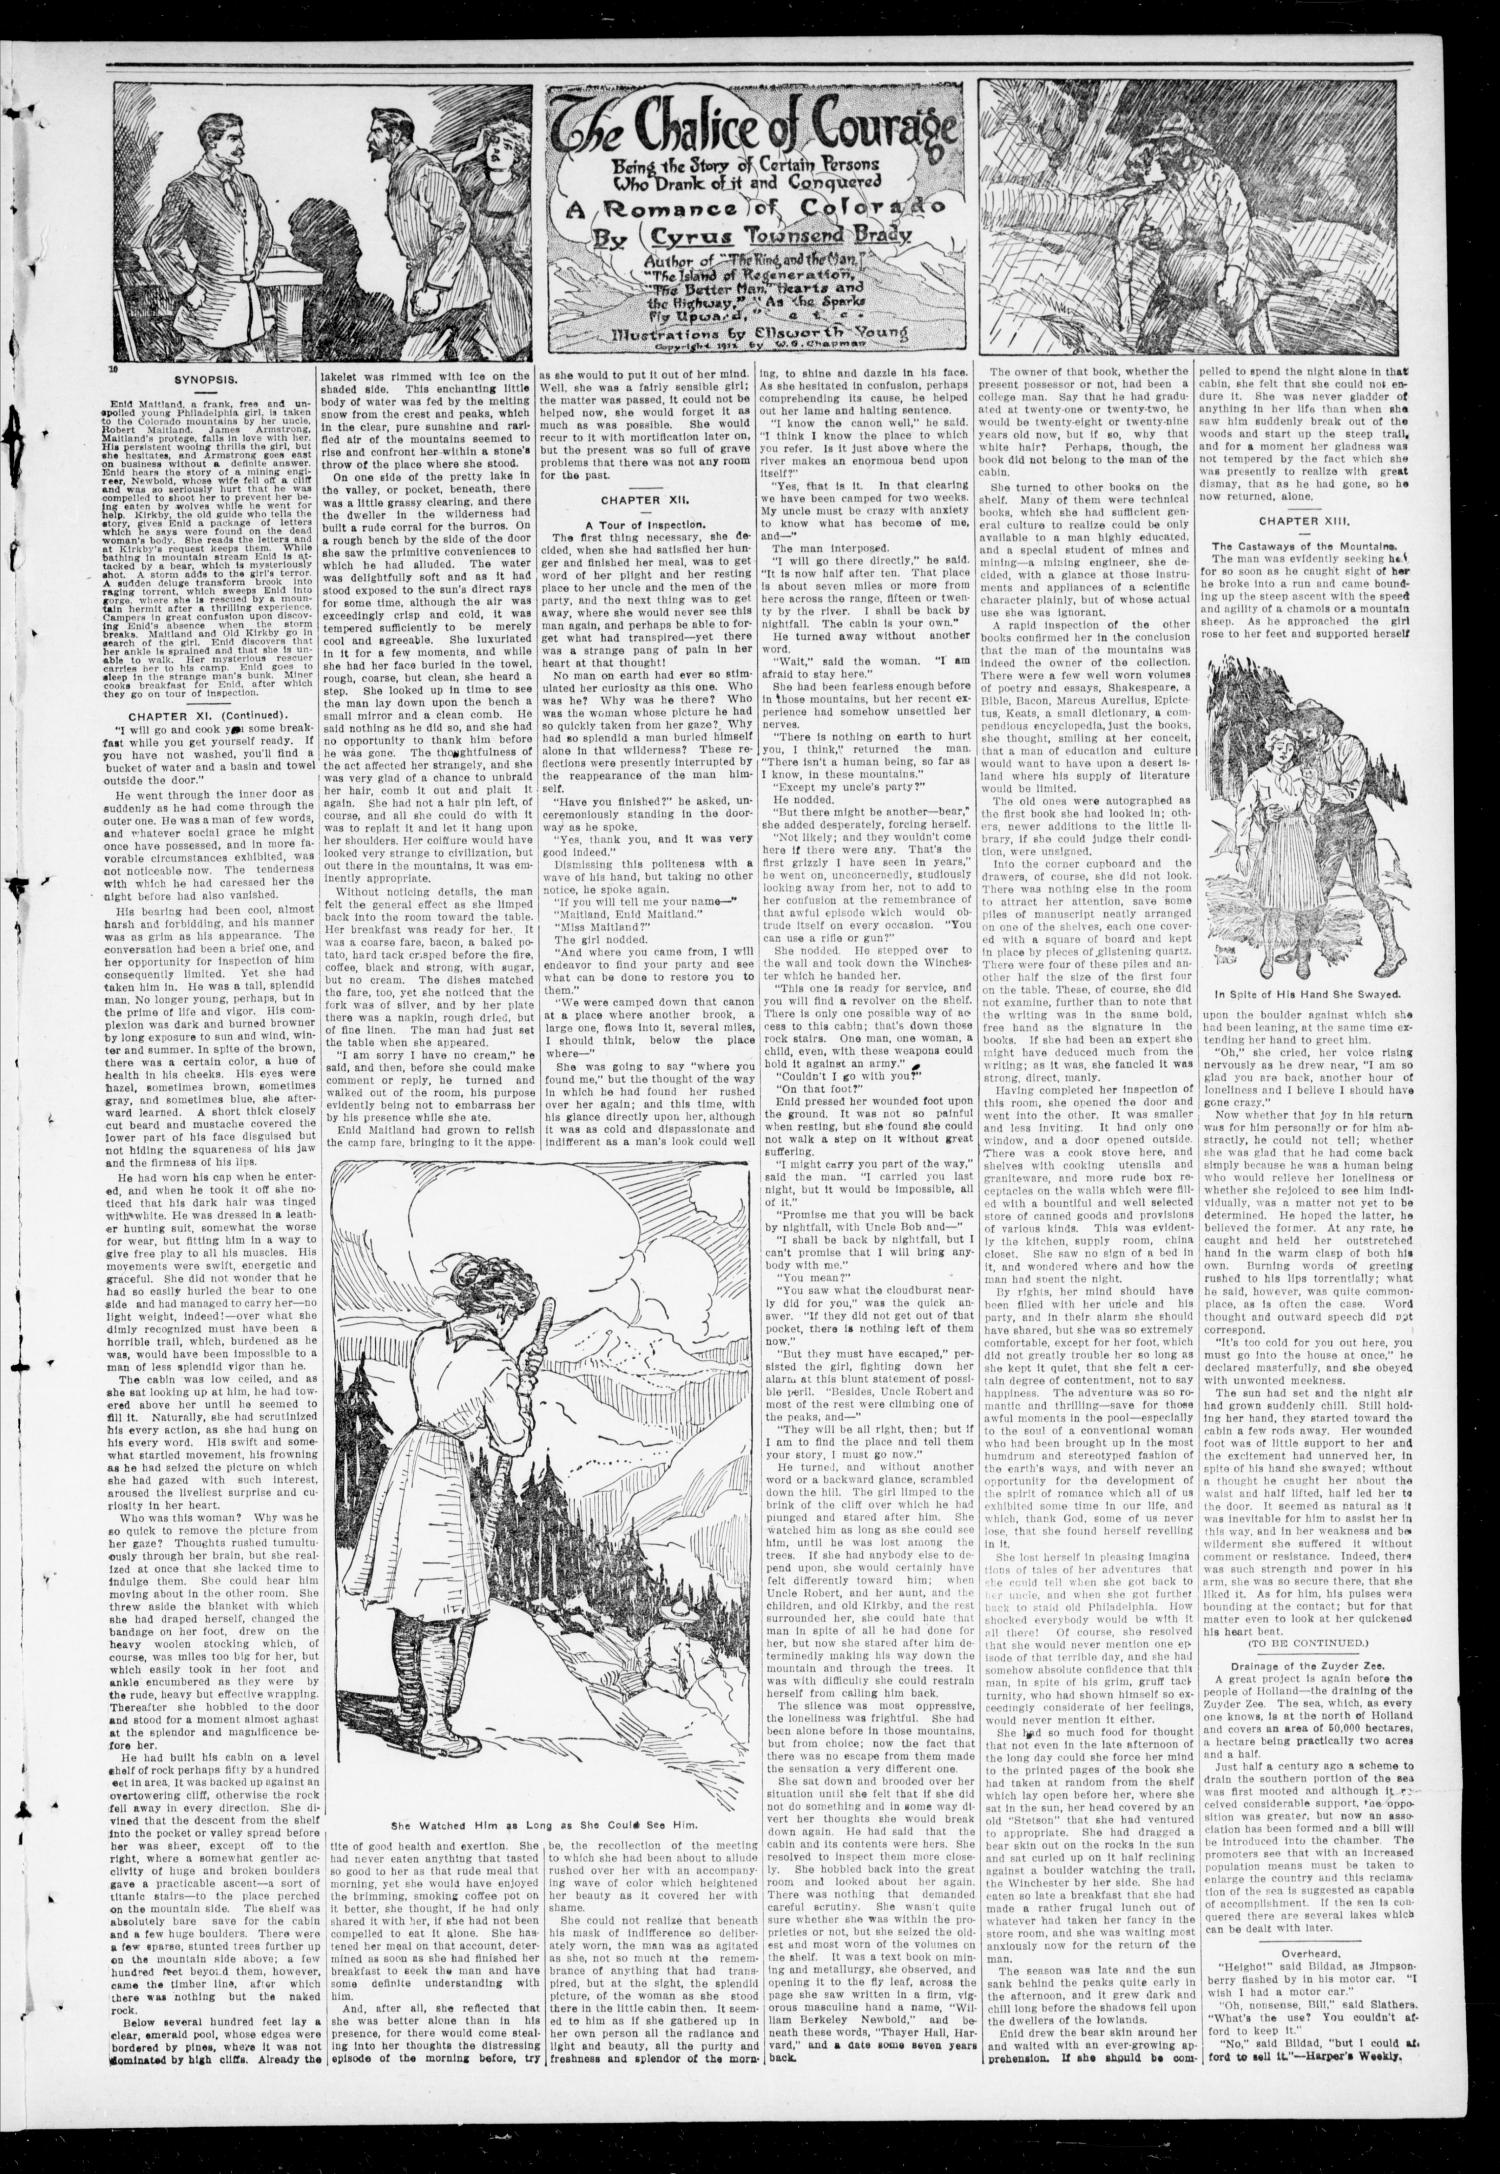 The Norman Transcript. (Norman, Okla.), Vol. 24, No. 5, Ed. 1 Thursday, October 24, 1912                                                                                                      [Sequence #]: 3 of 10